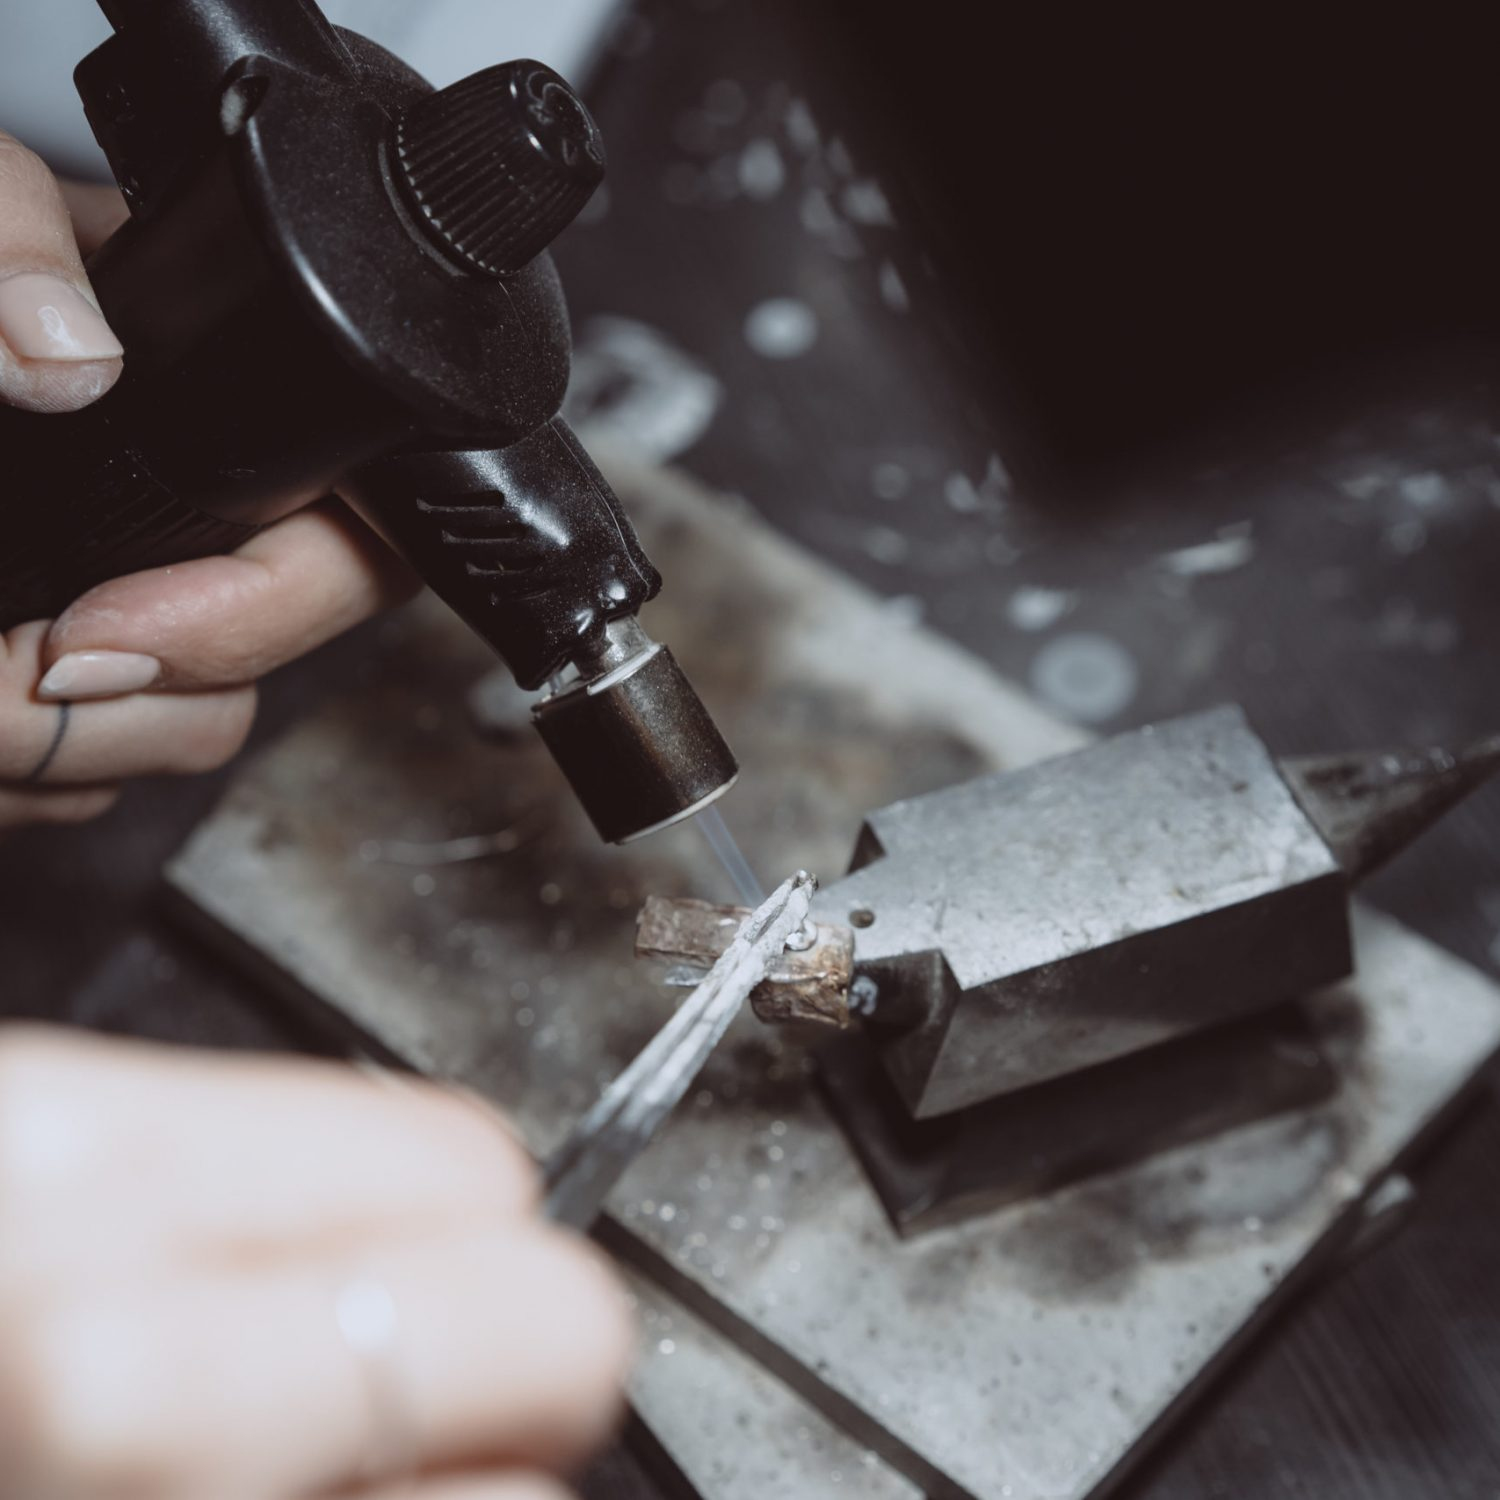 In the workshop, a woman jeweler is busy soldering jewelry on a workbench